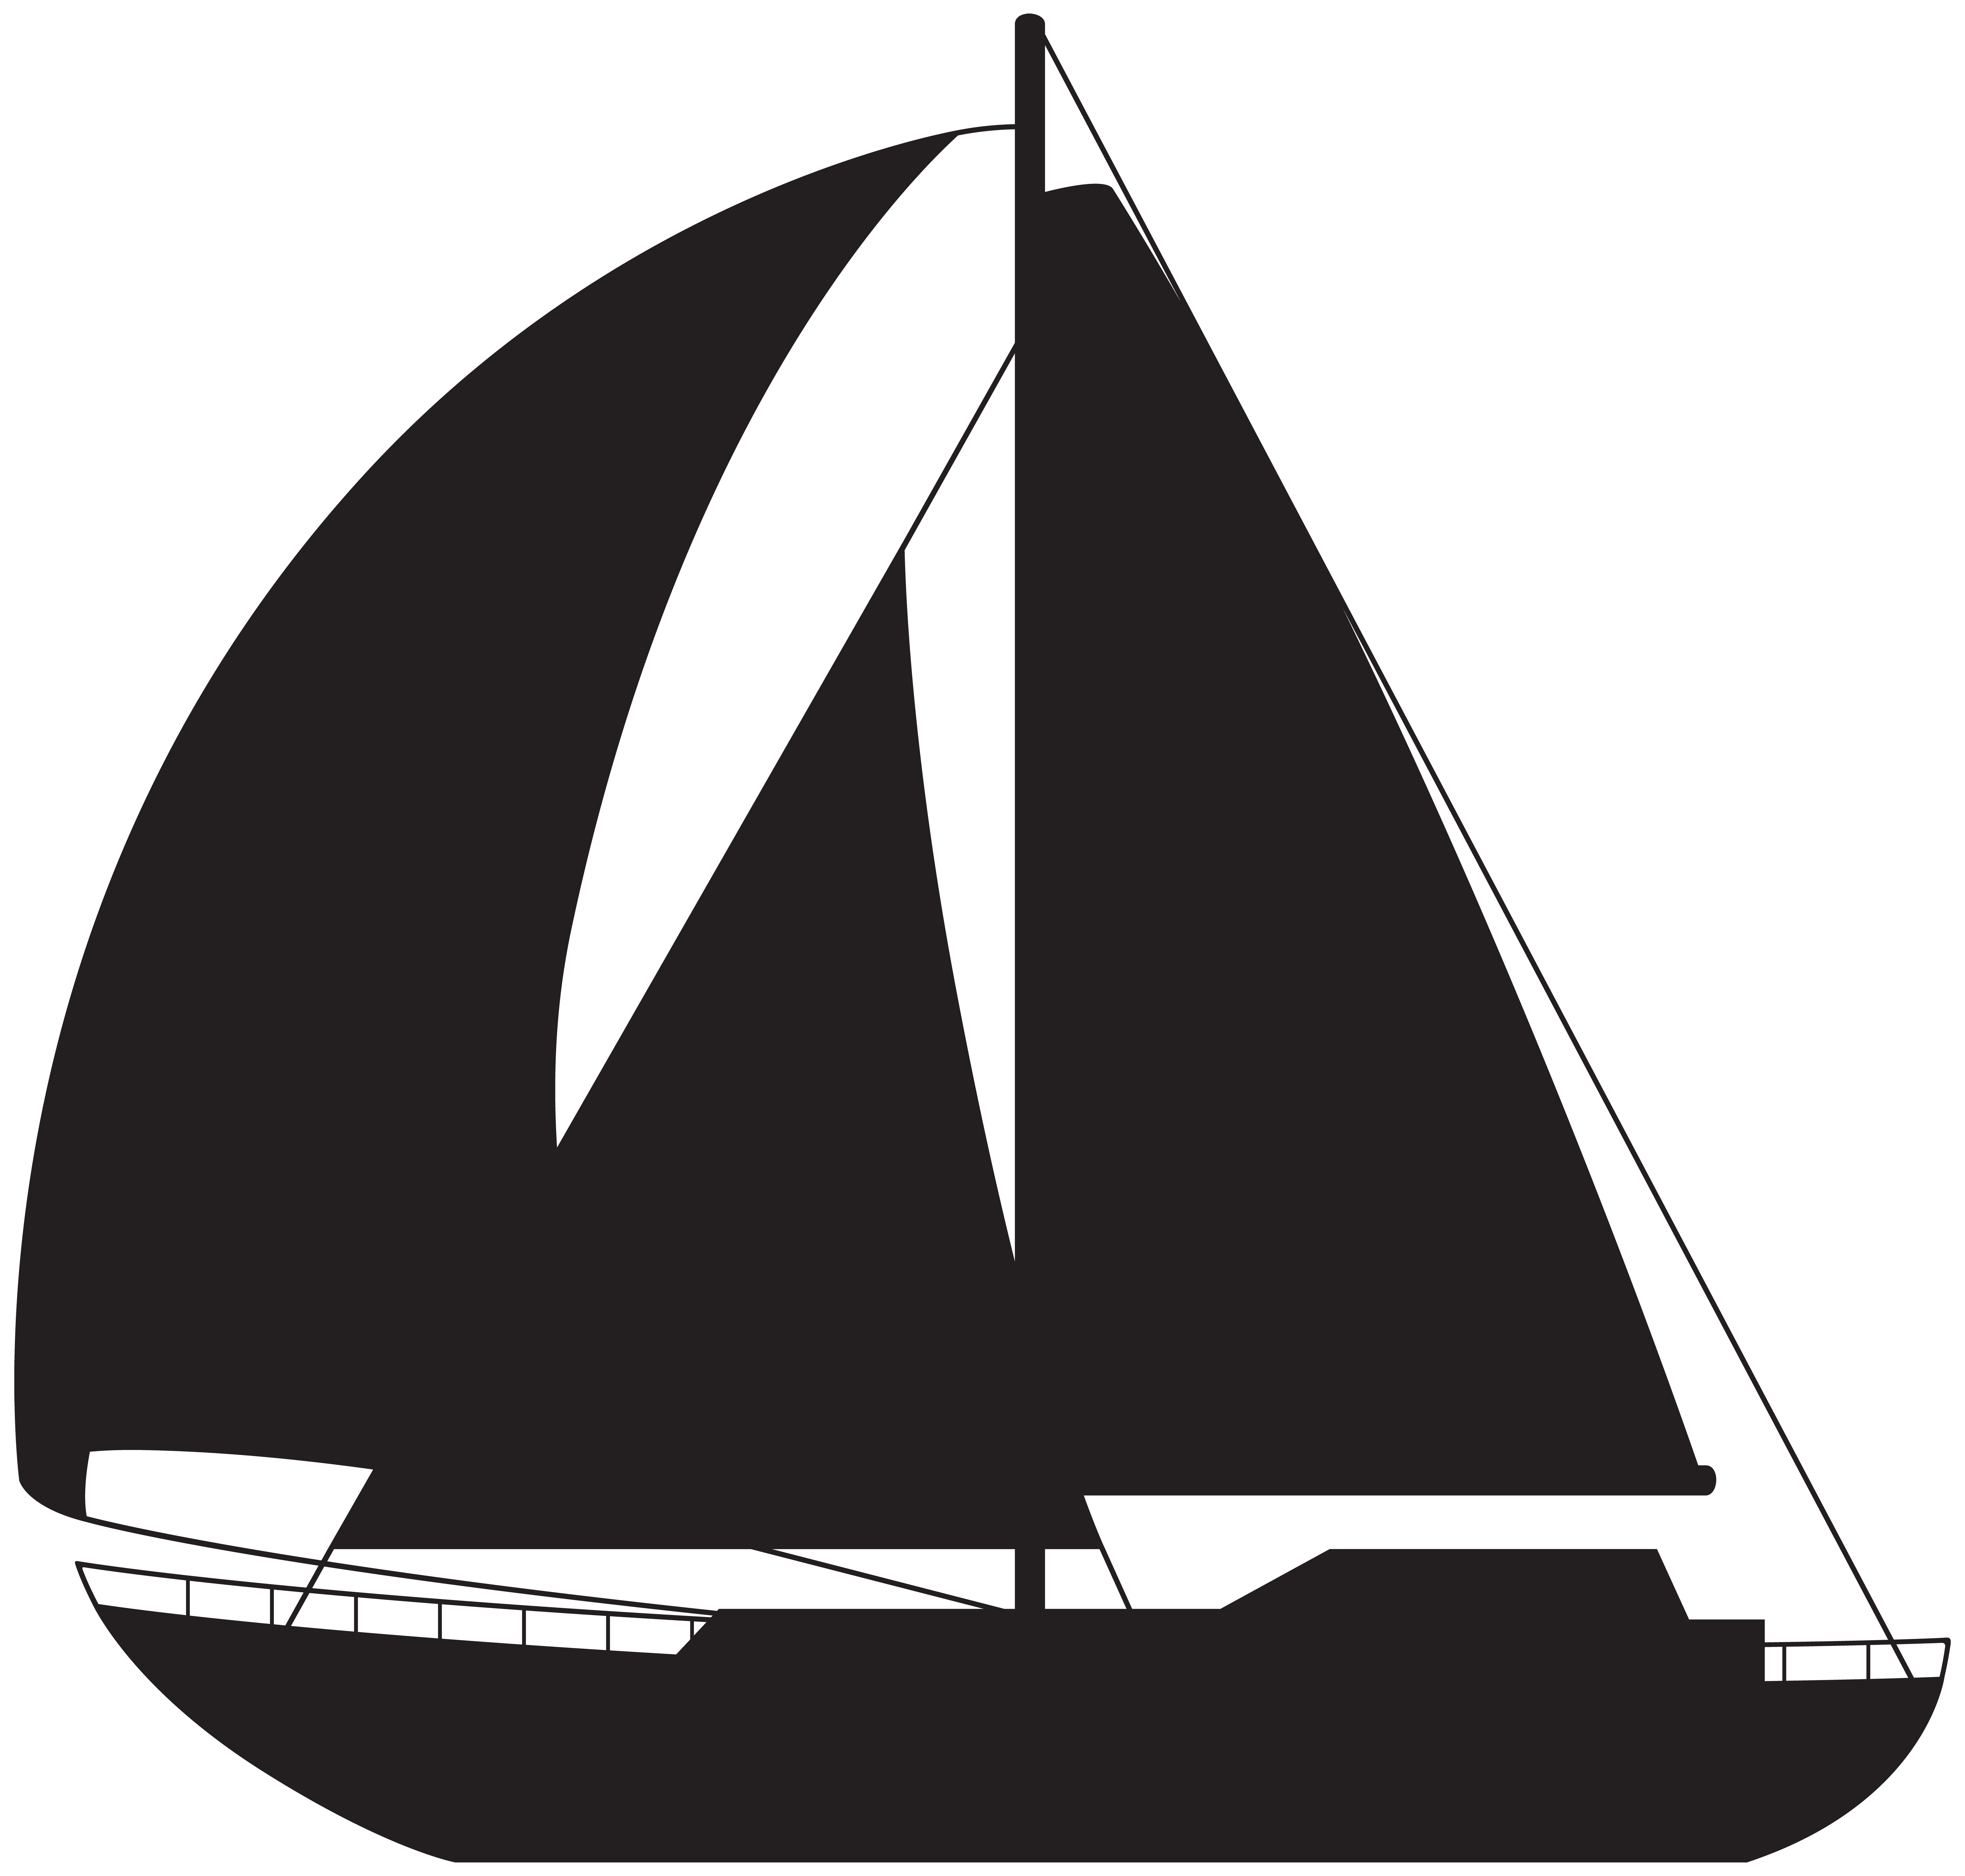 Sailboat png clip art. Clipart boat silhouette